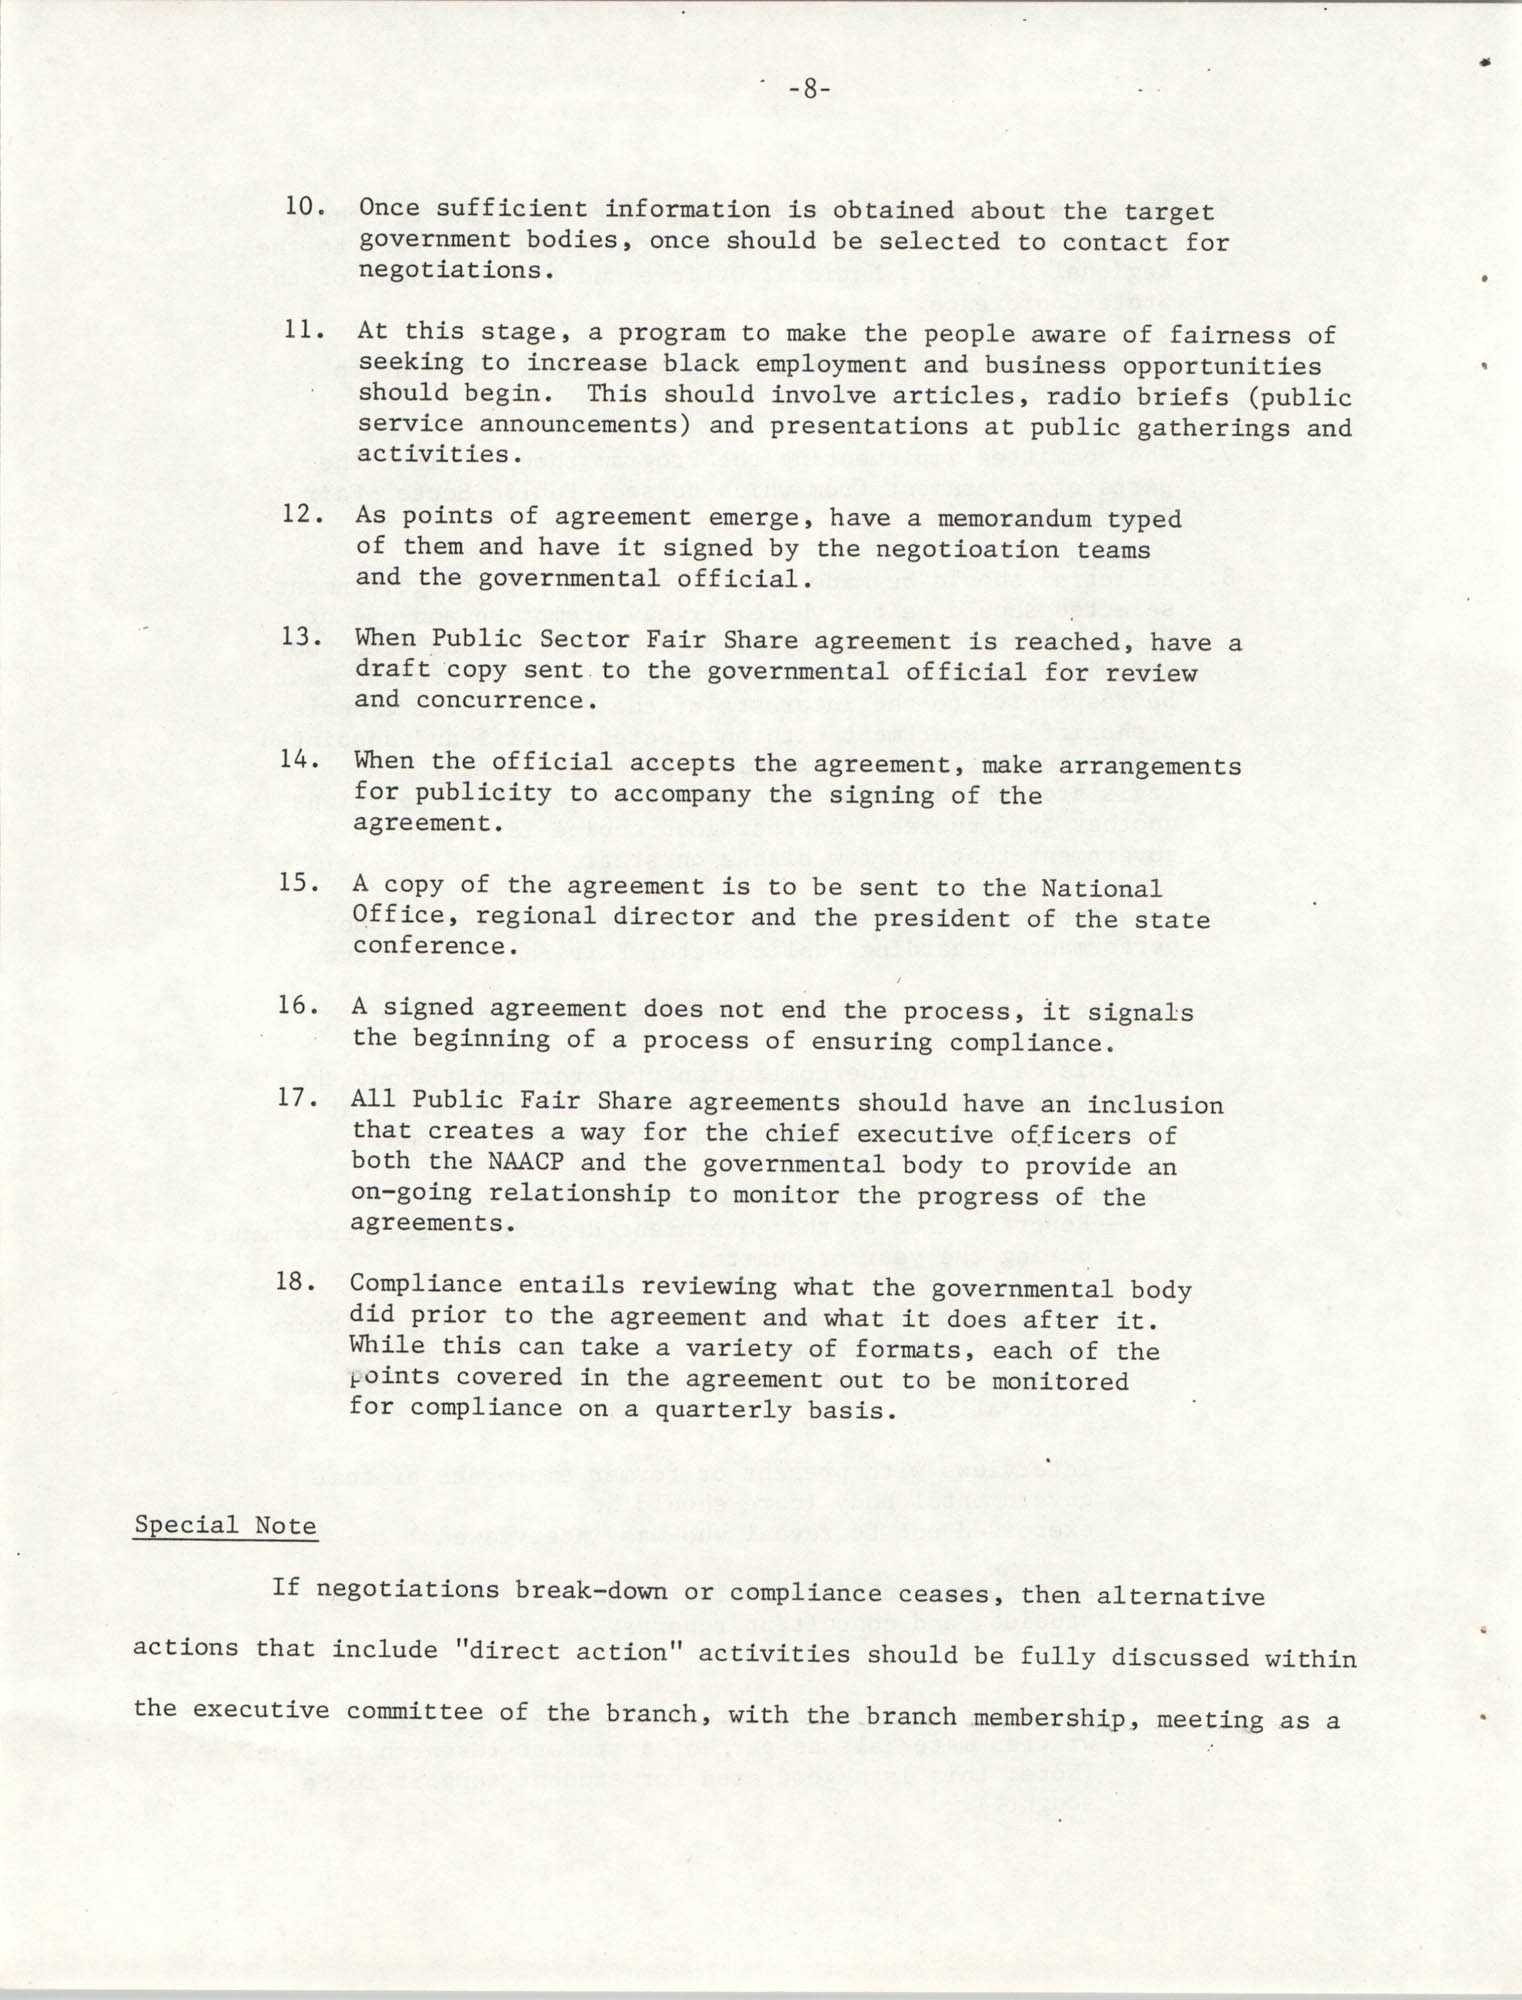 Governmental Fair Share Workshop for South Carolina Conference of Branches, October 11, 1985, Page 8